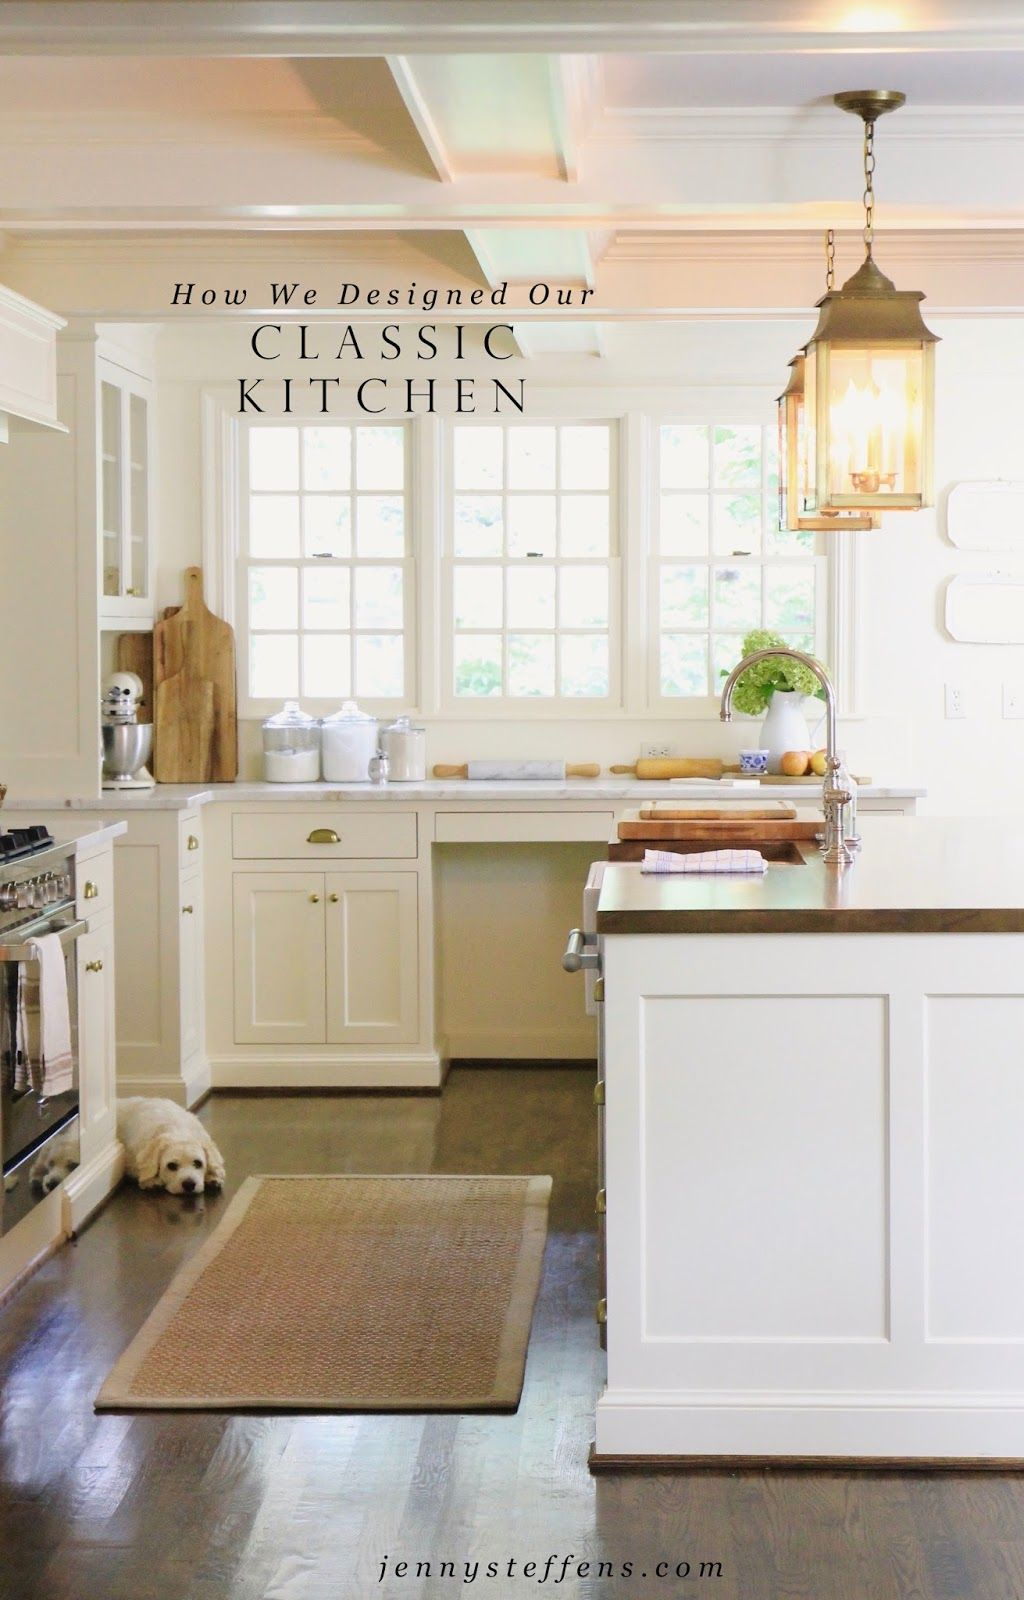 Jenny steffens hobick our classic white kitchen design marble countertops wood island top brass pulls lanterns